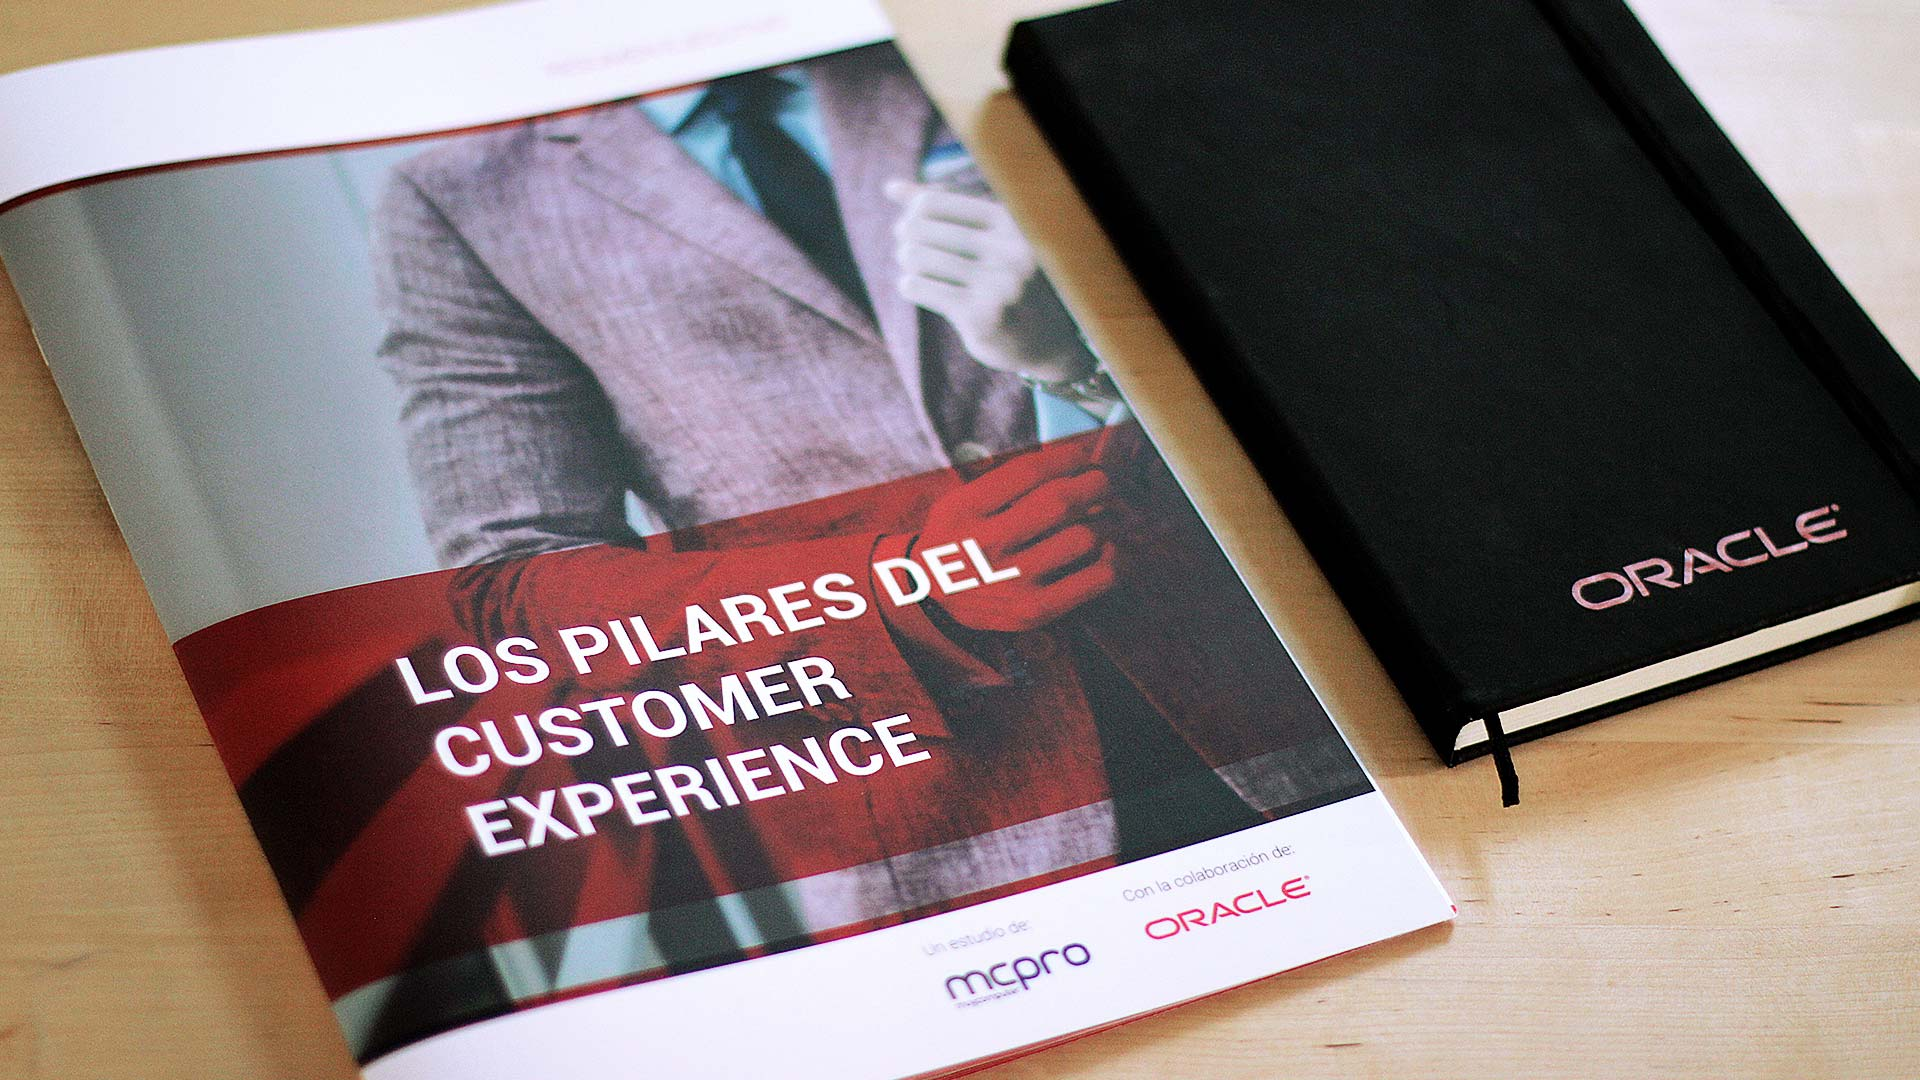 oracle-content-marketing-pilares-customer-experience-2017-14